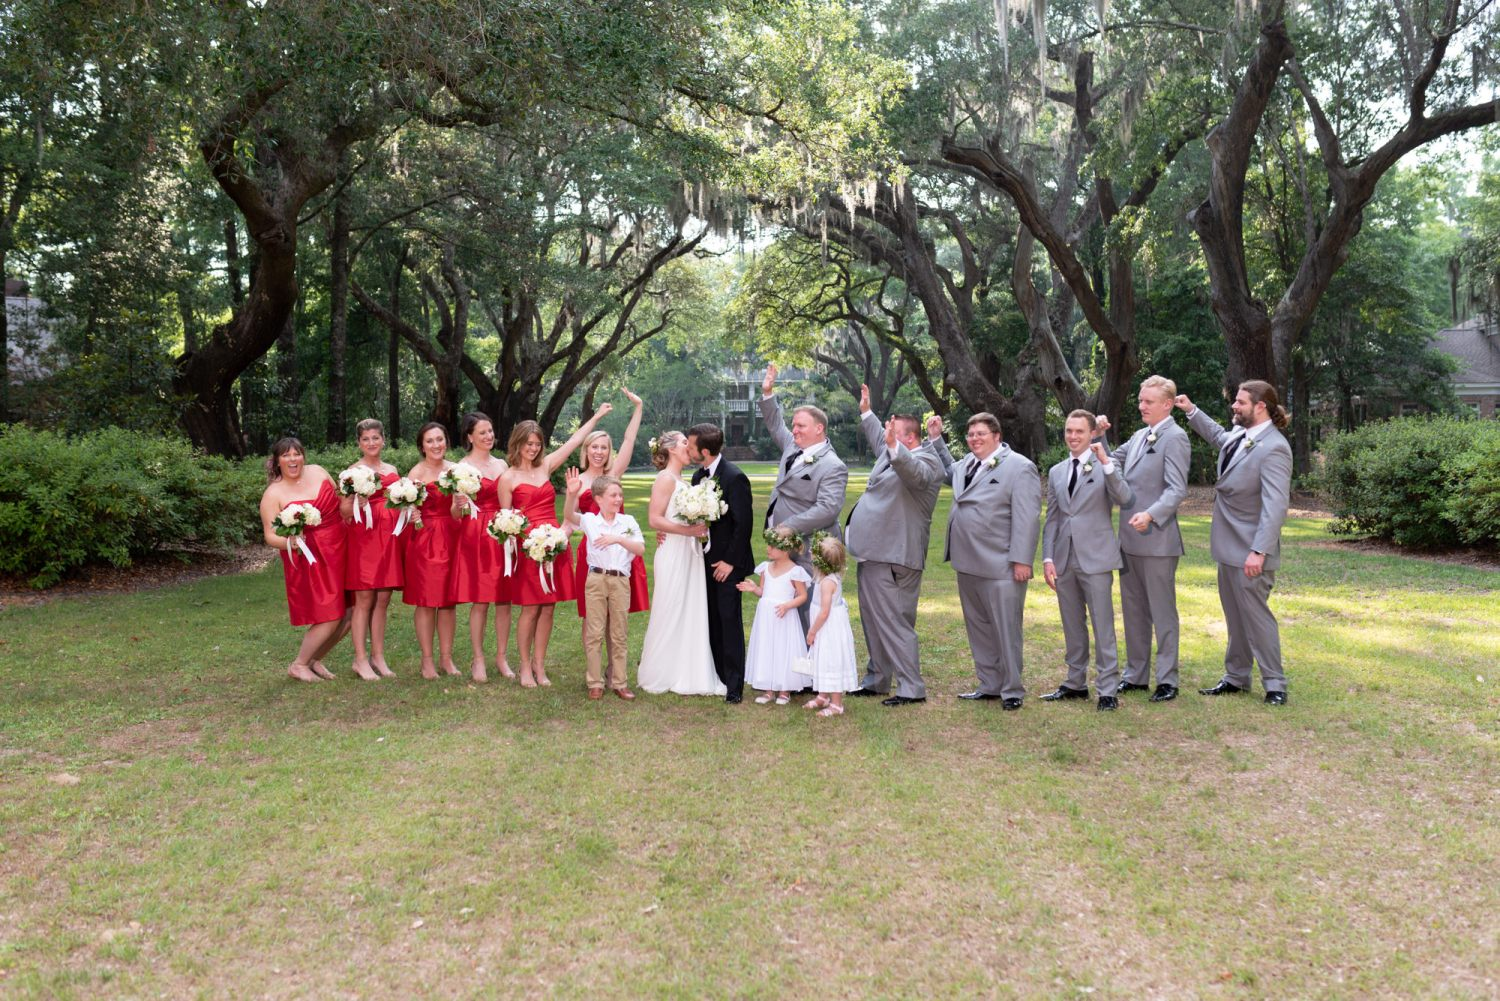 Bride and groom kissing with wedding party cheering - Wachesaw Plantation